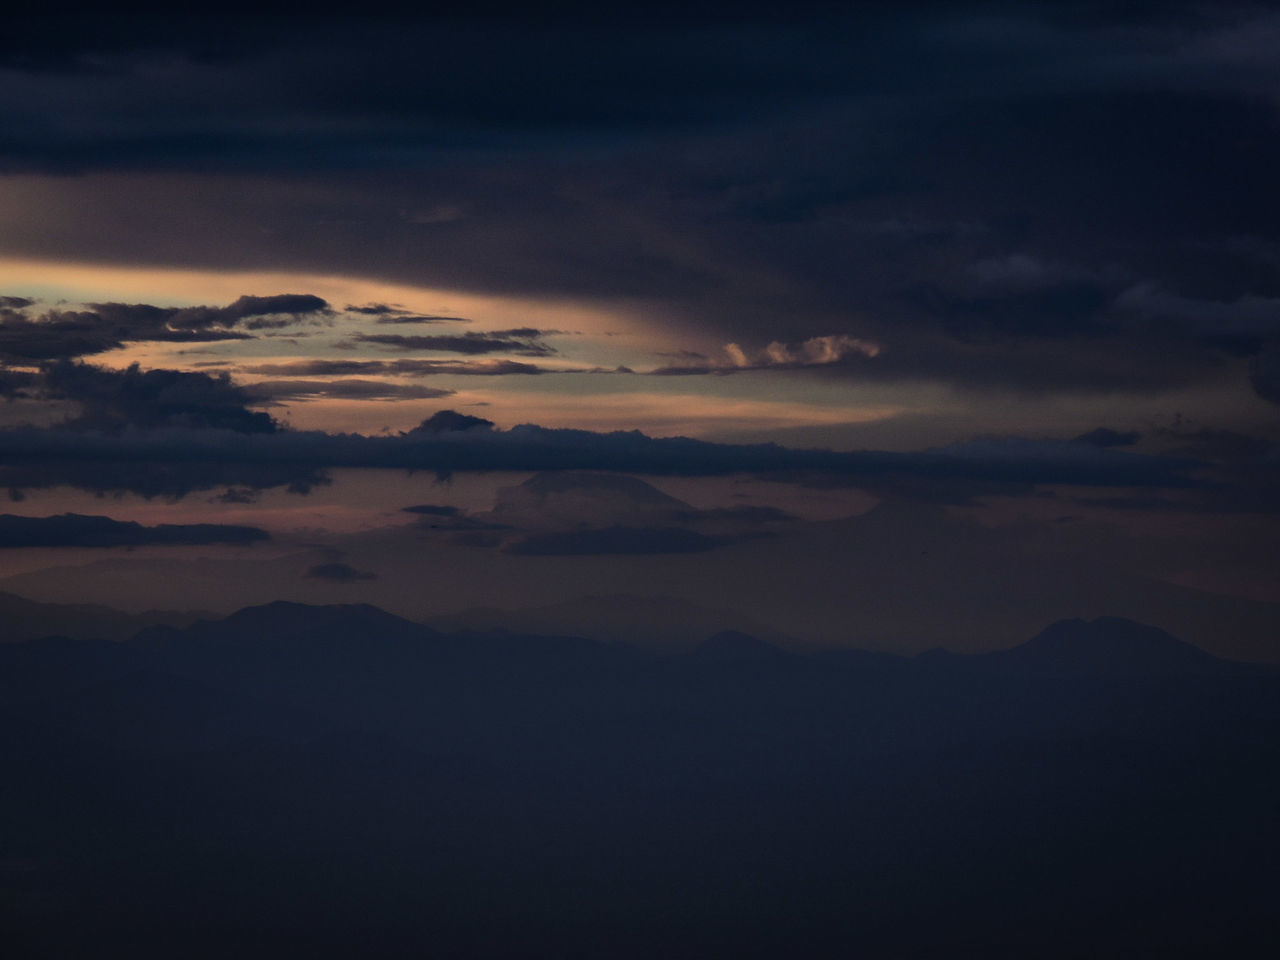 Beauty In Nature Cloud - Sky Day Landscape Landscapes Lesotho Majestic Nature Nature Nature_collection Naturelovers No People Outdoor Outdoor Photography Outdoors Outside Scenics Silhouette Sky Sundown Sunset Tranquil Scene Tranquility Usambara UsambaraMountains